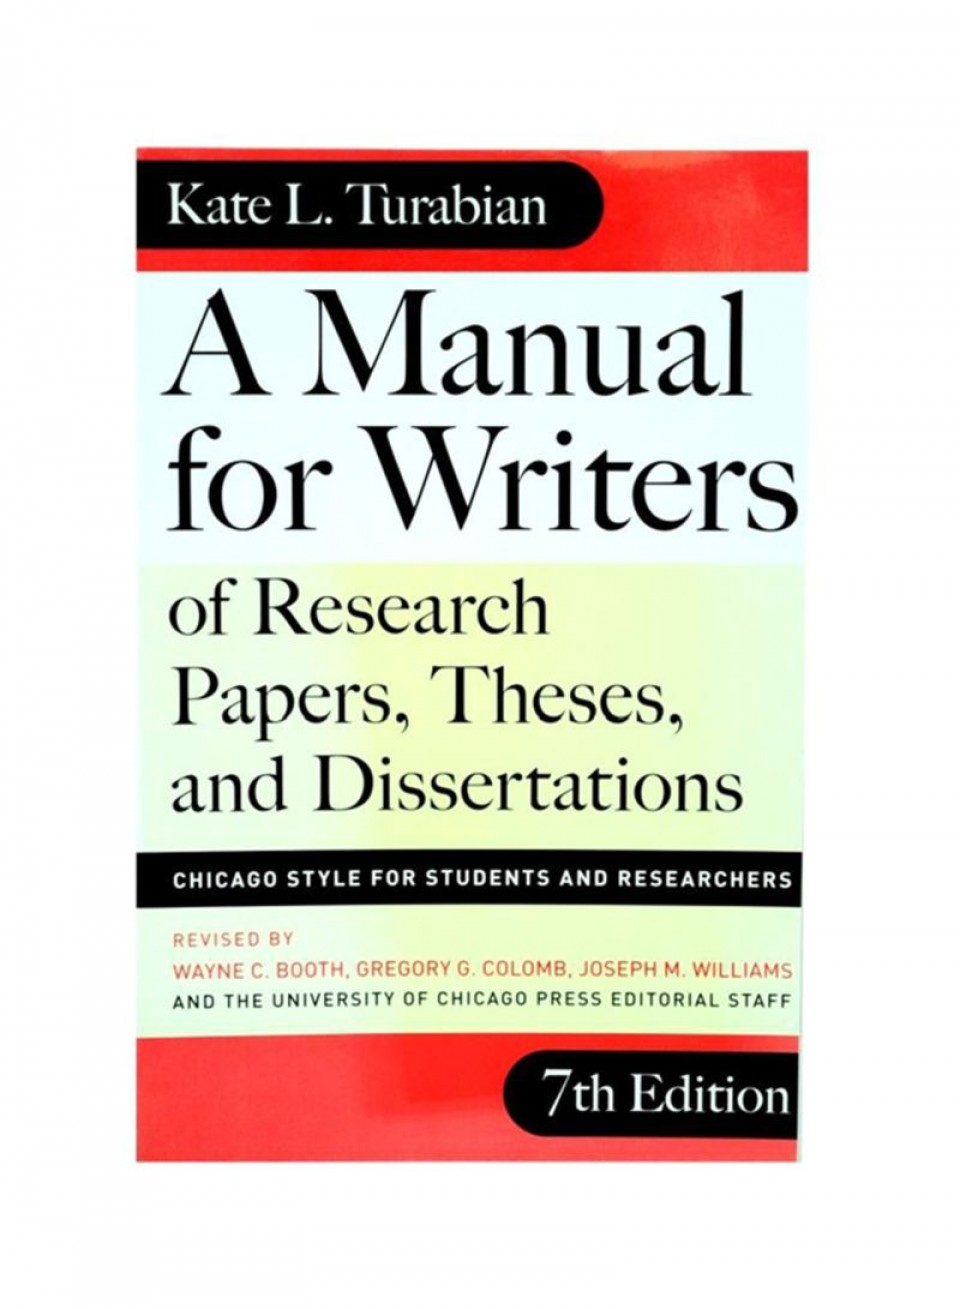 021 Research Paper N21270079a 1 Manual For Writers Of Papers Theses And Magnificent Dissertations A Amazon 9th Edition Pdf 8th 13 960